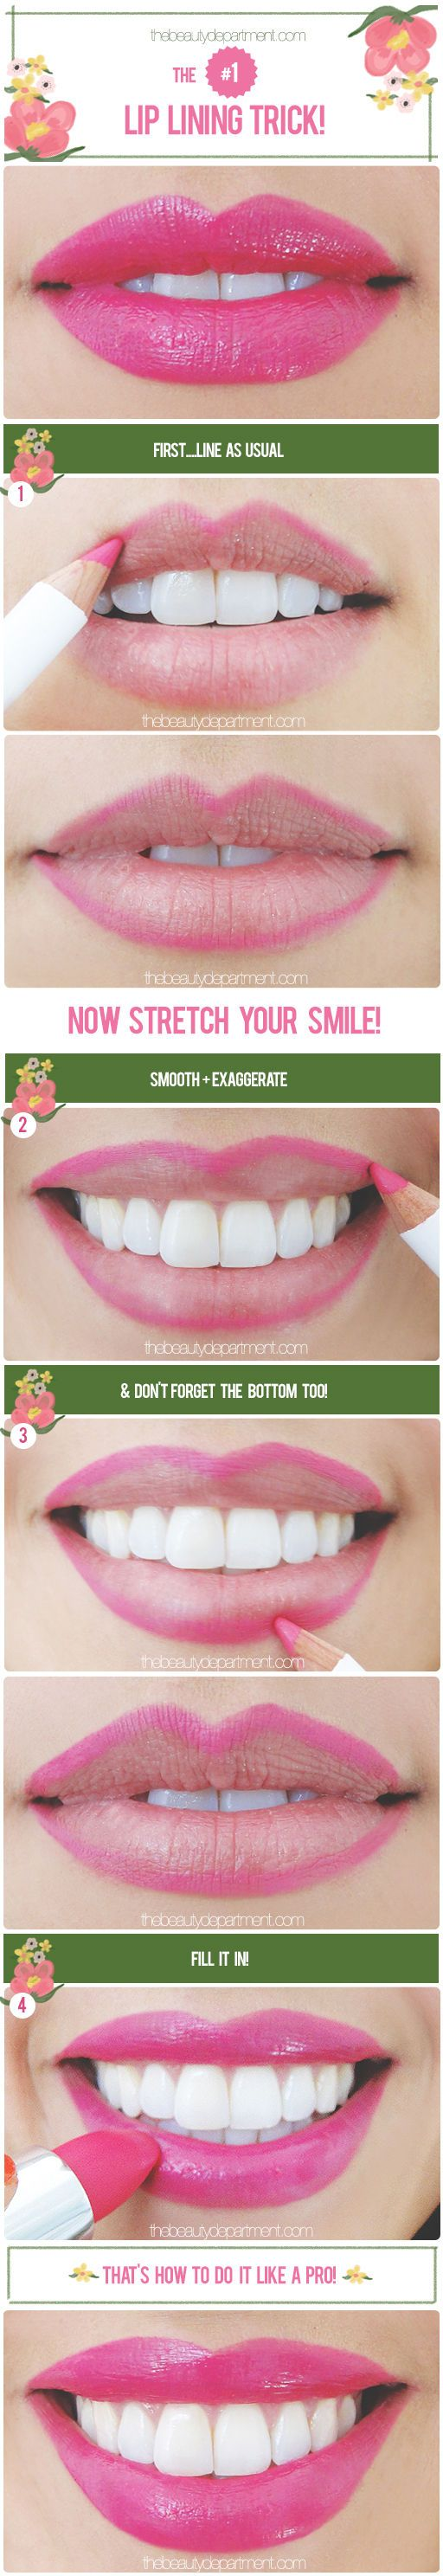 beauty trick: apply lip liner while smiling to ensure a smooth application